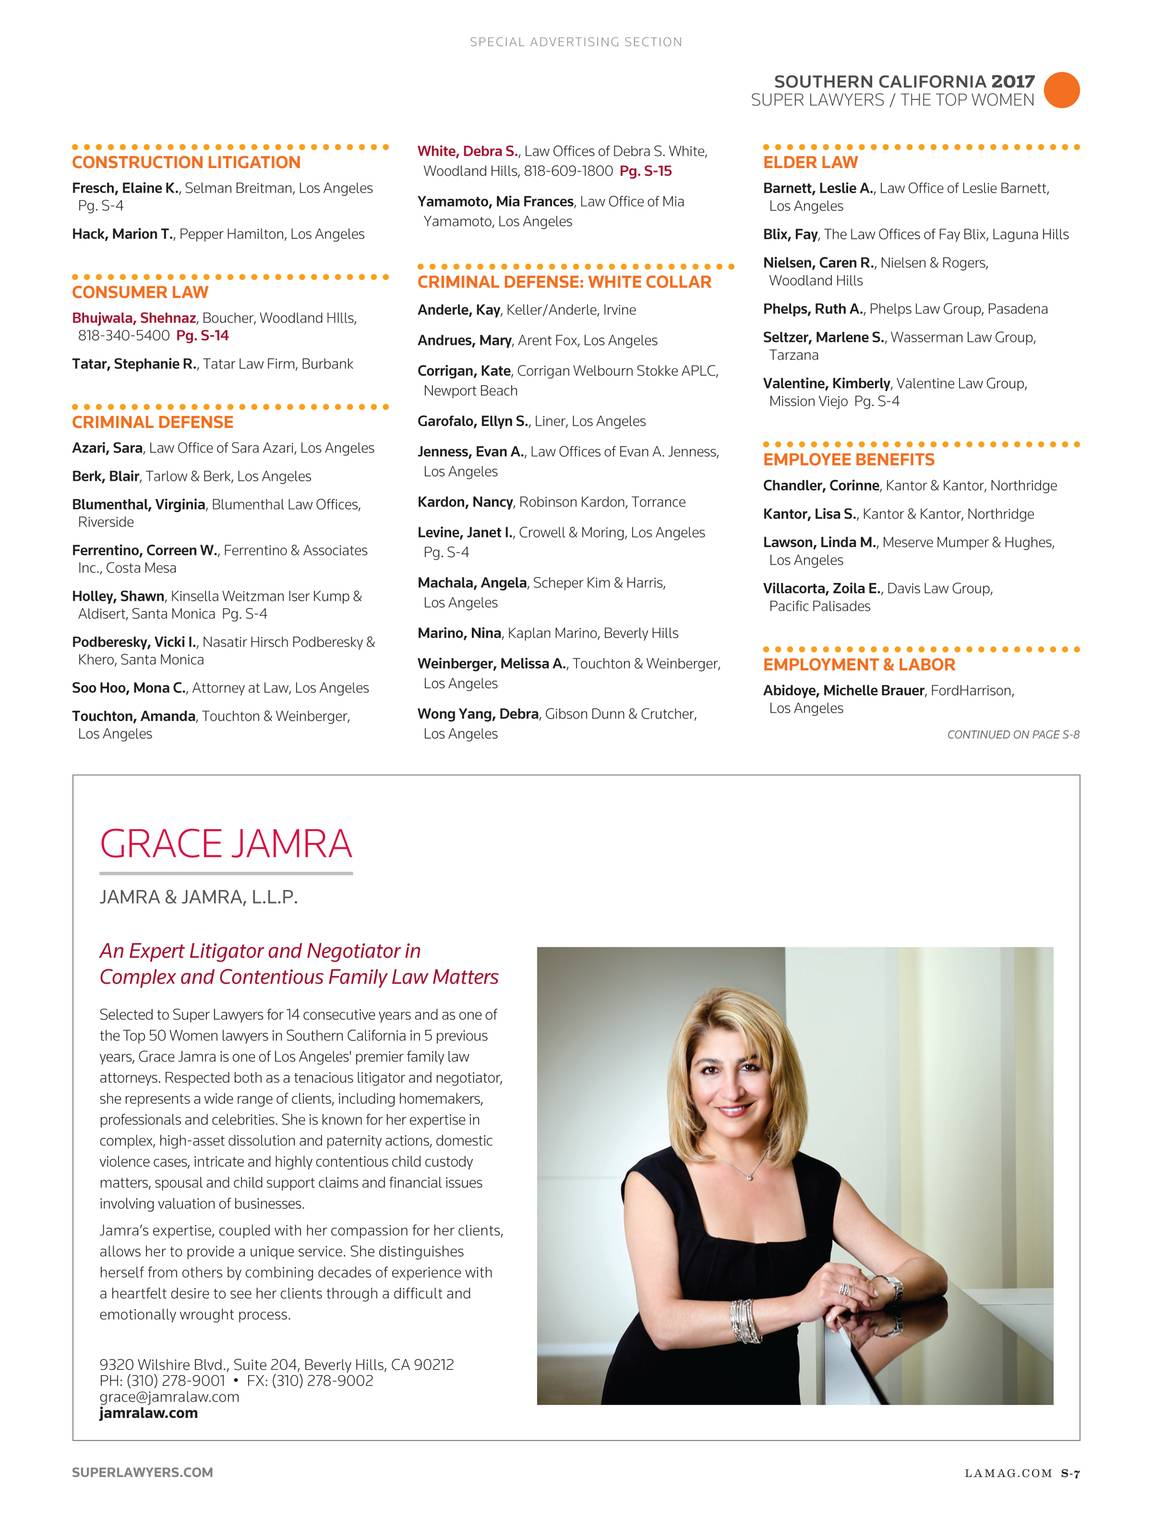 Super Lawyers The Top Women Attorneys In Southern California 2017